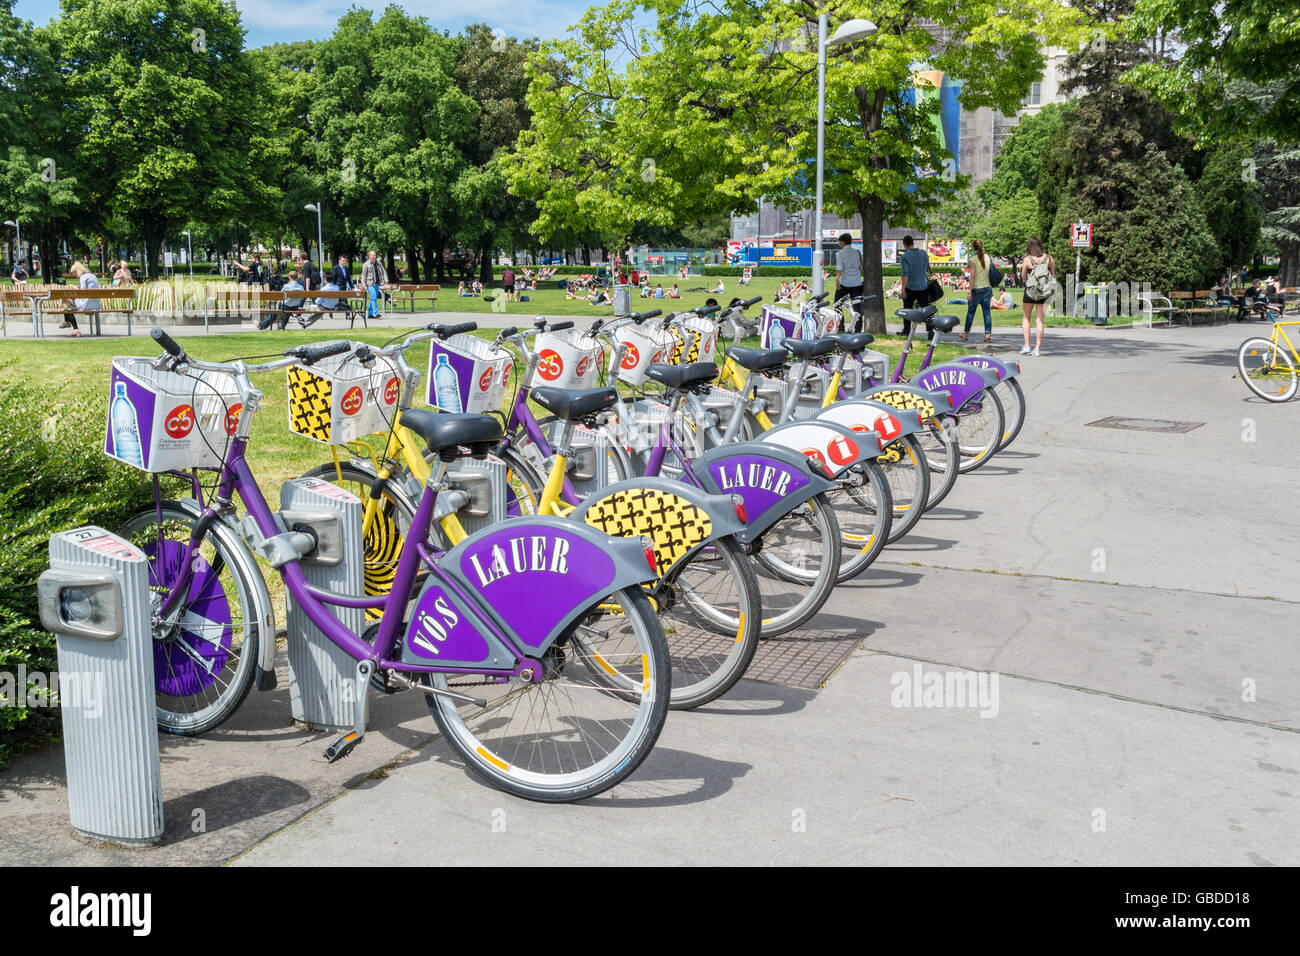 Parked bicycles in a row at citybike station in Sigmund Freud Park near Ringstrasse, Vienna, Austria - Stock Image